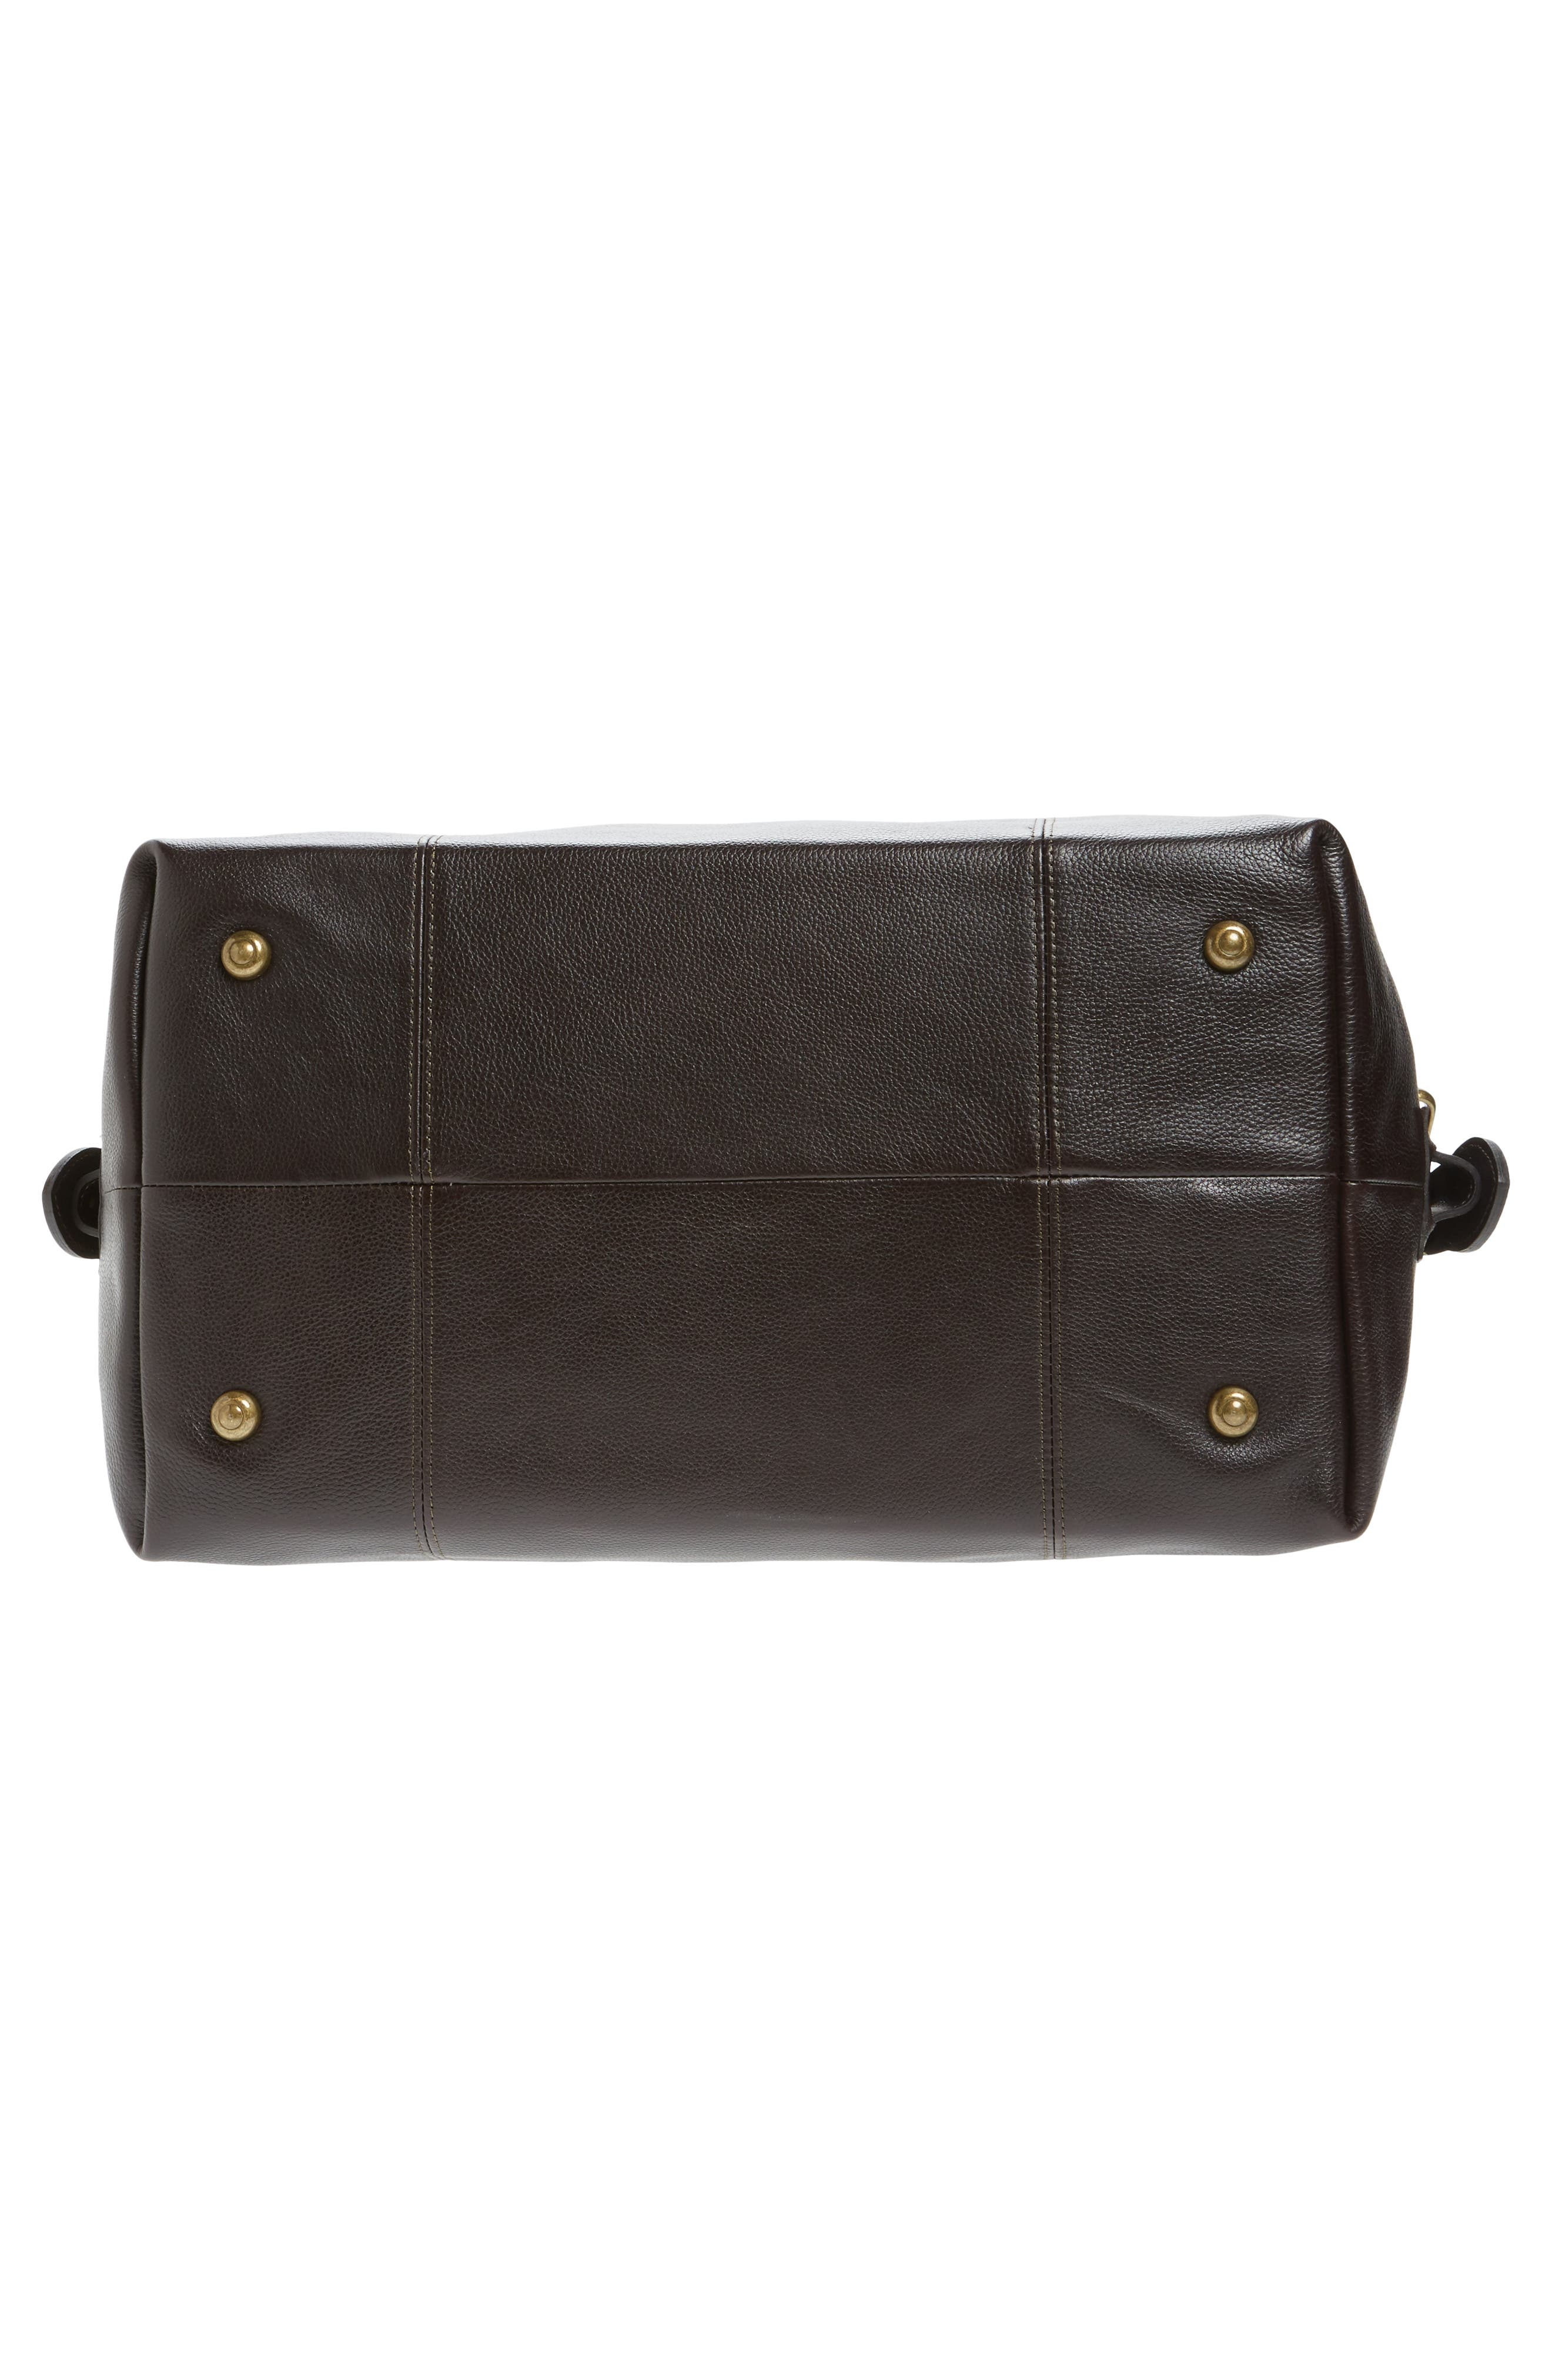 Leather Travel Bag,                             Alternate thumbnail 6, color,                             Chocolate